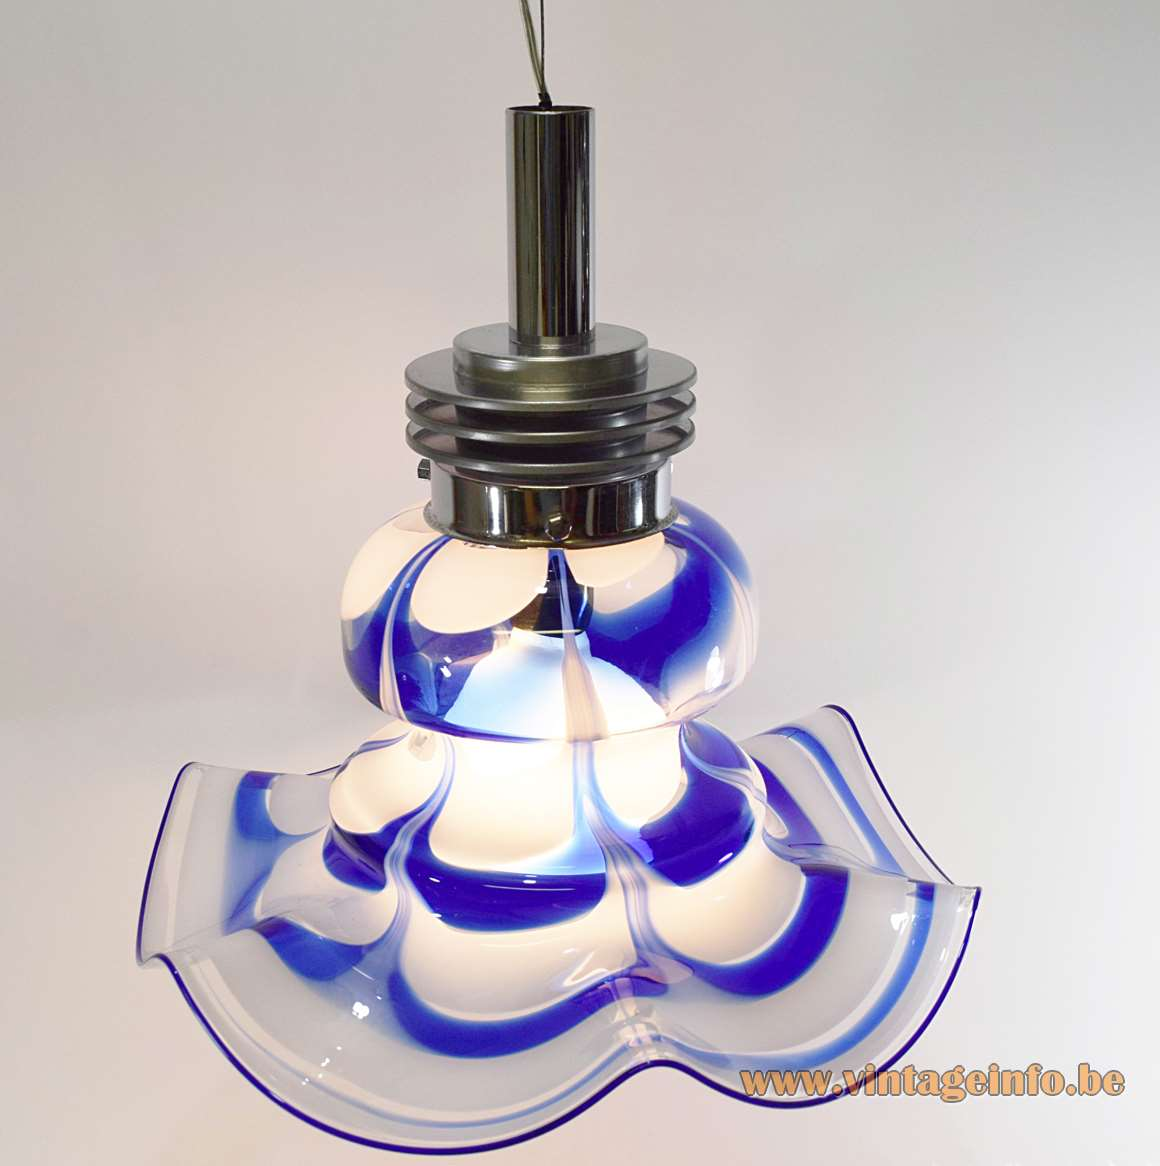 AV Mazzega Blue & White Glass Chandelier Murano 1970s 1980s chrome rings MCM Carlo Nason